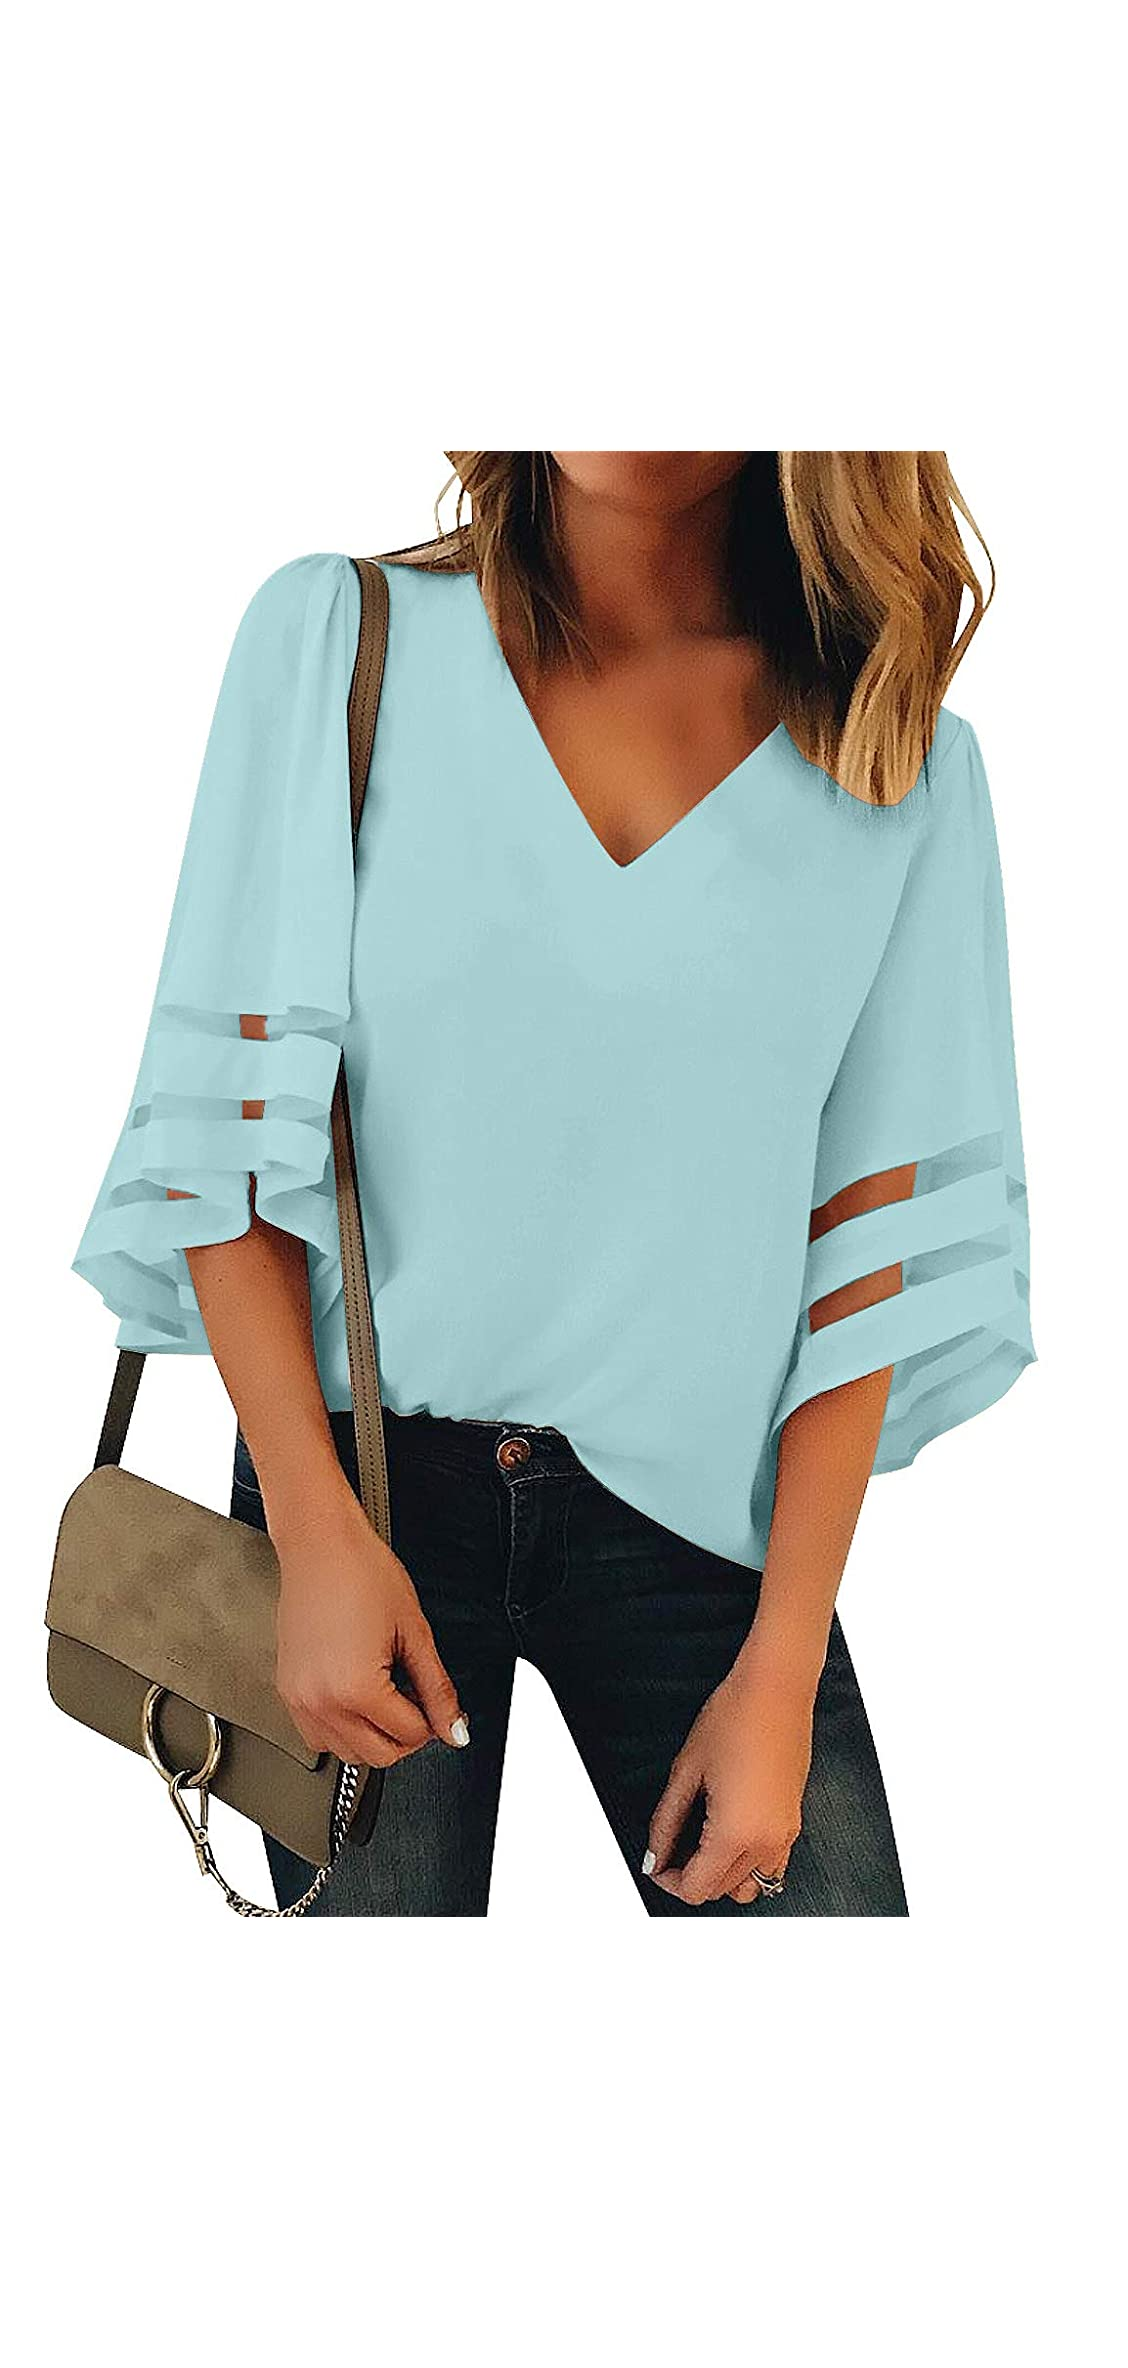 Women's V Neck Mesh Panel Blouse / Bell Sleeve